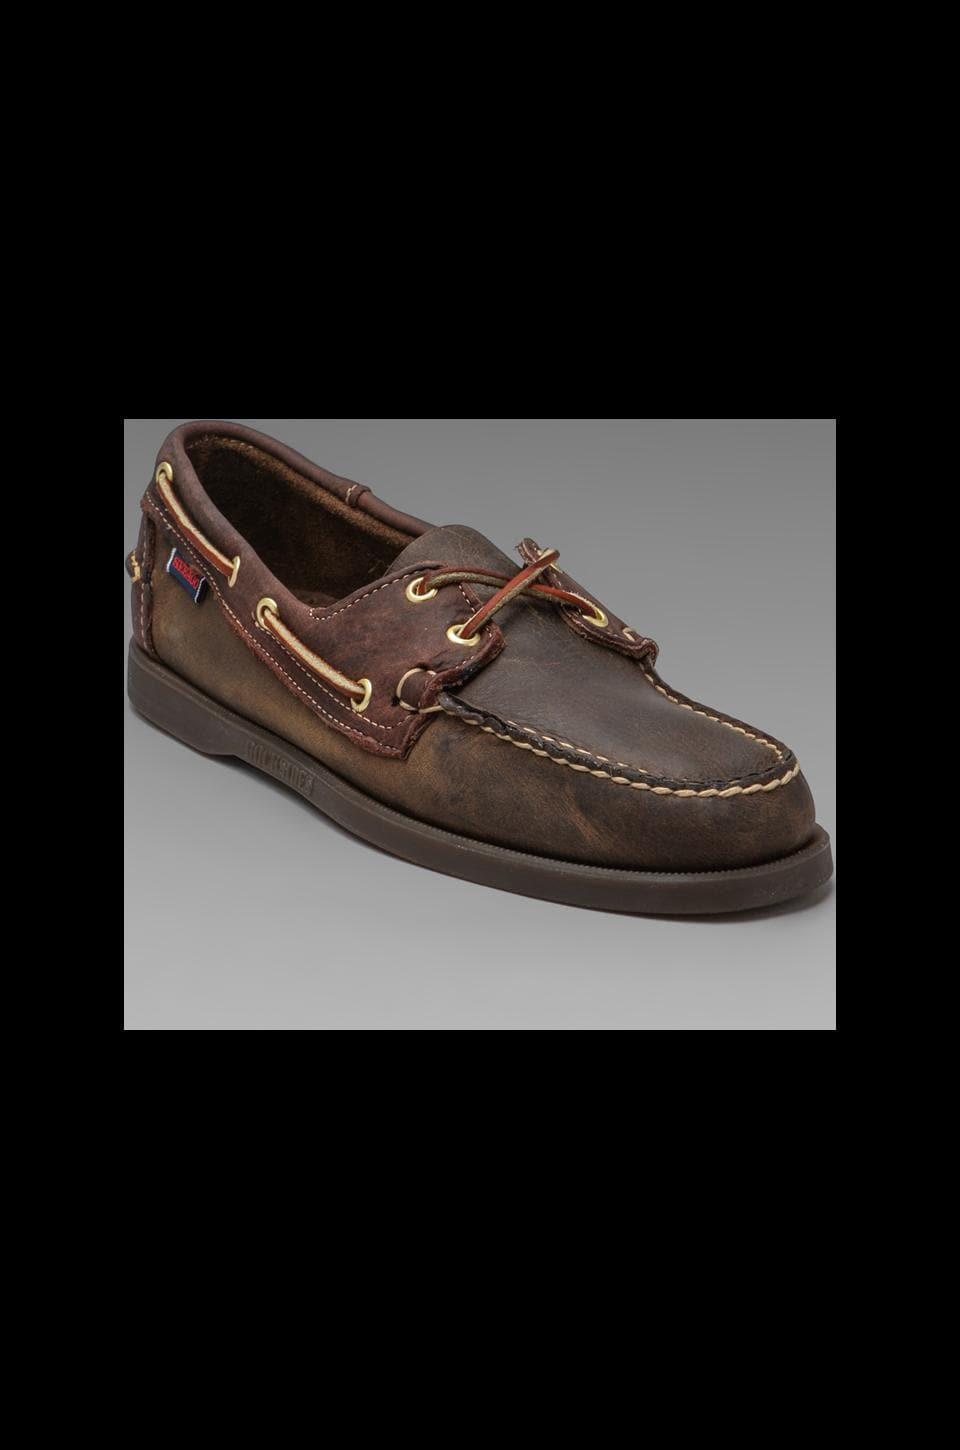 Sebago Spinnaker in Brown